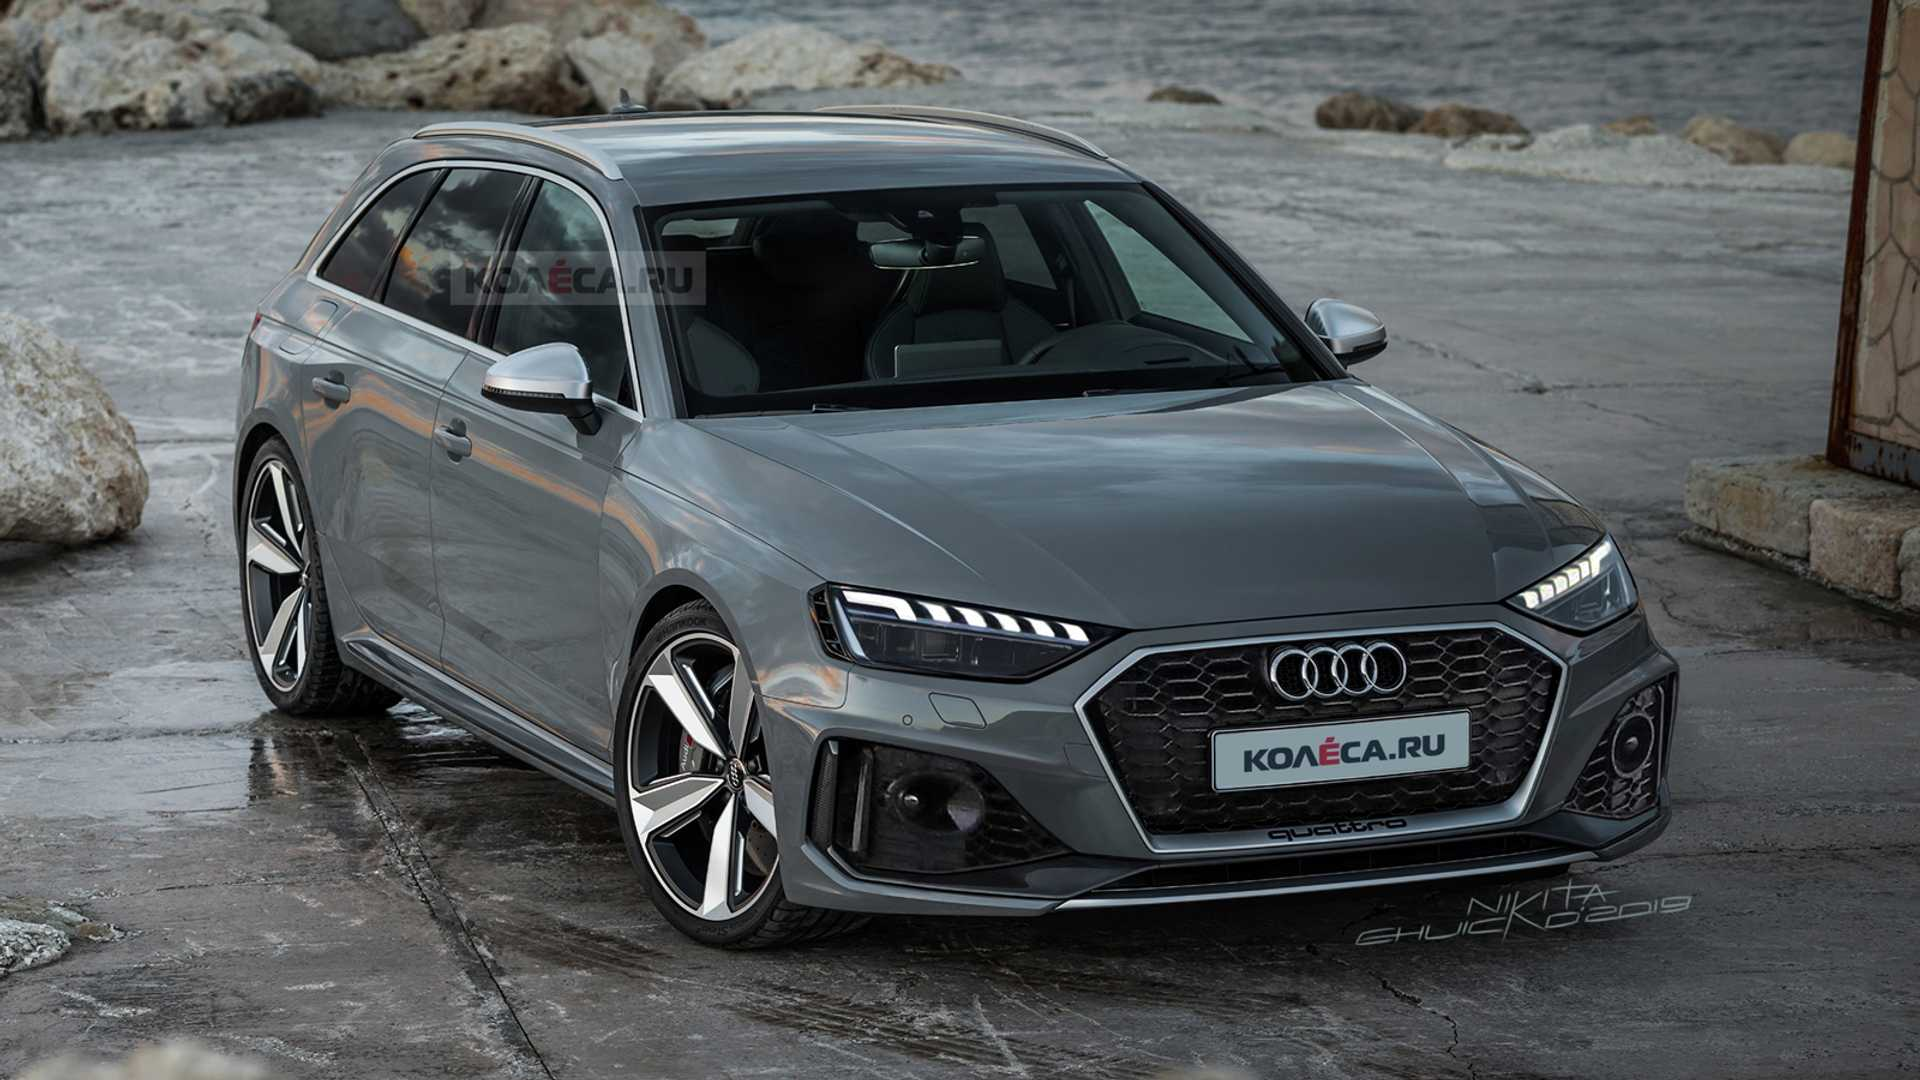 60 Concept of 2020 Audi Rs6 Wagon Performance and New Engine with 2020 Audi Rs6 Wagon